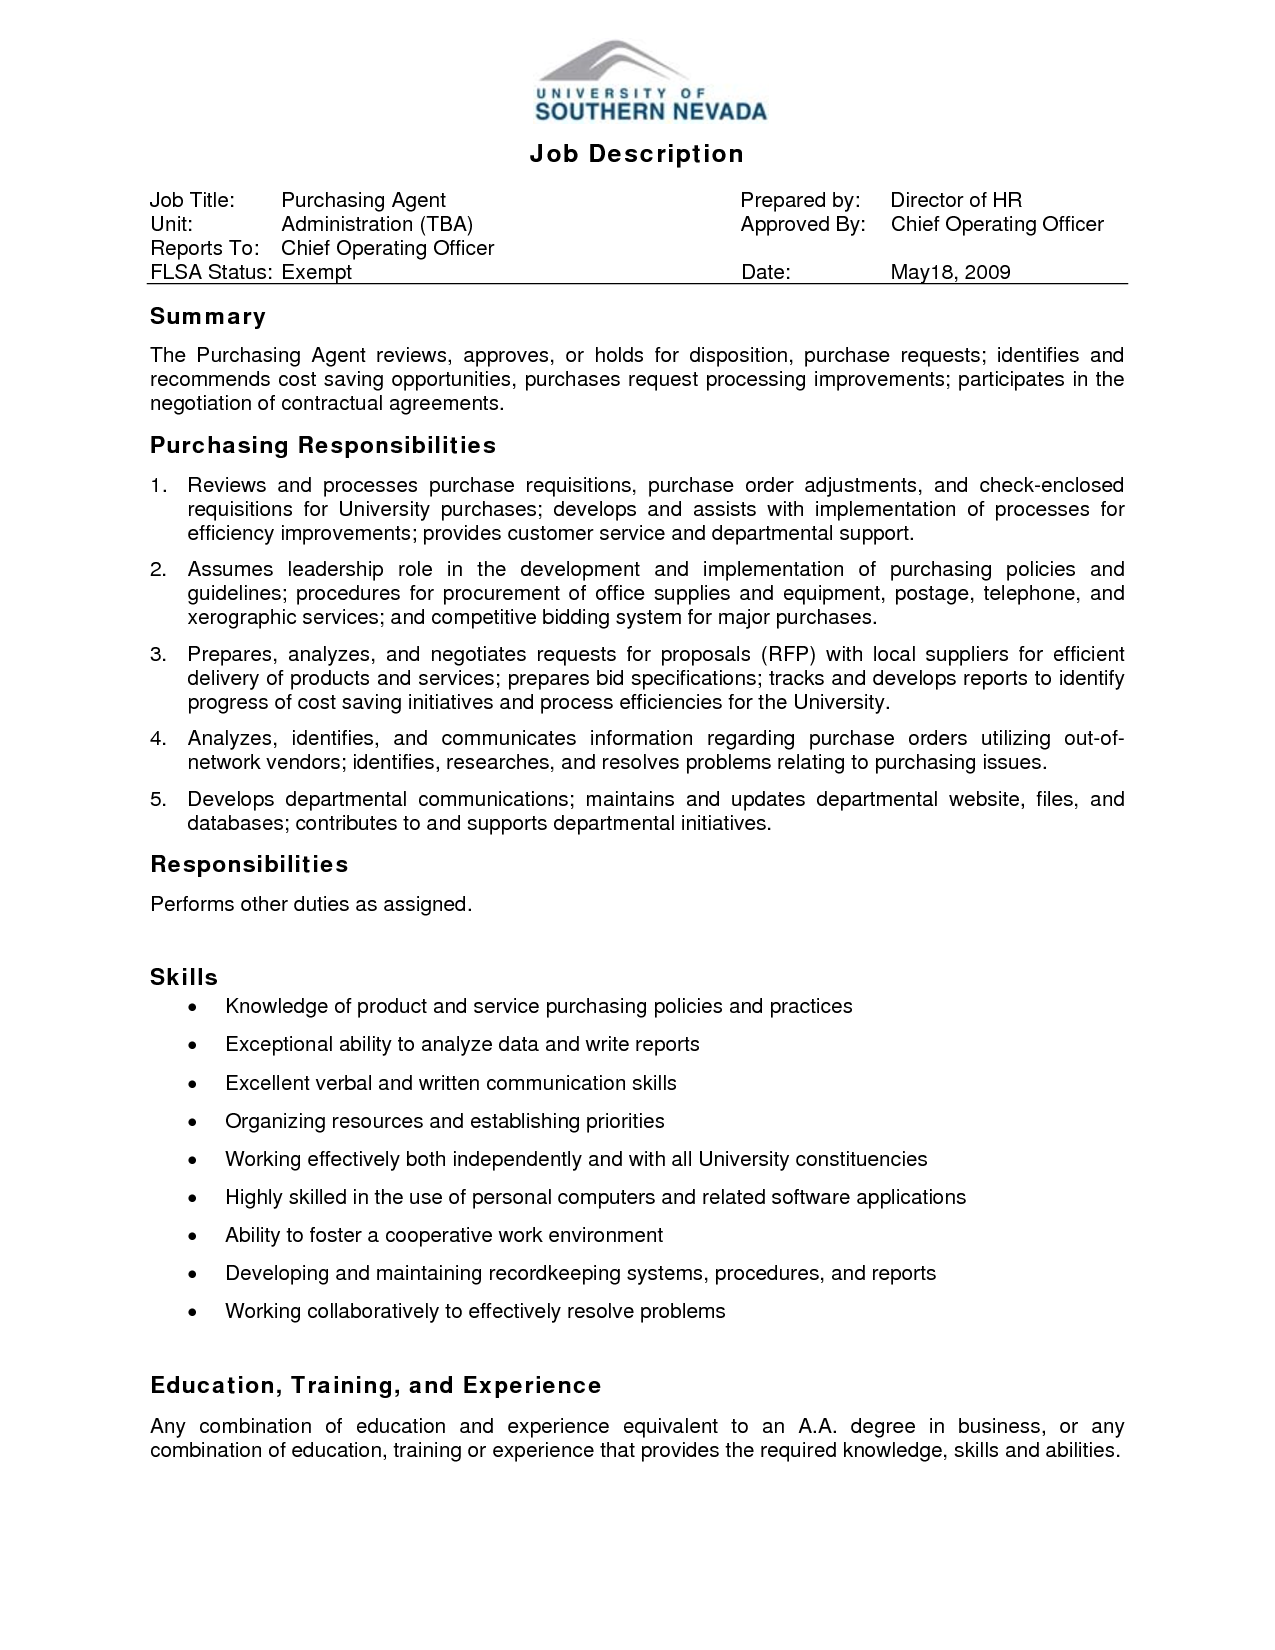 Attractive Administrative Assistant Duties Cover Letter Job Description Administrative  Assistant